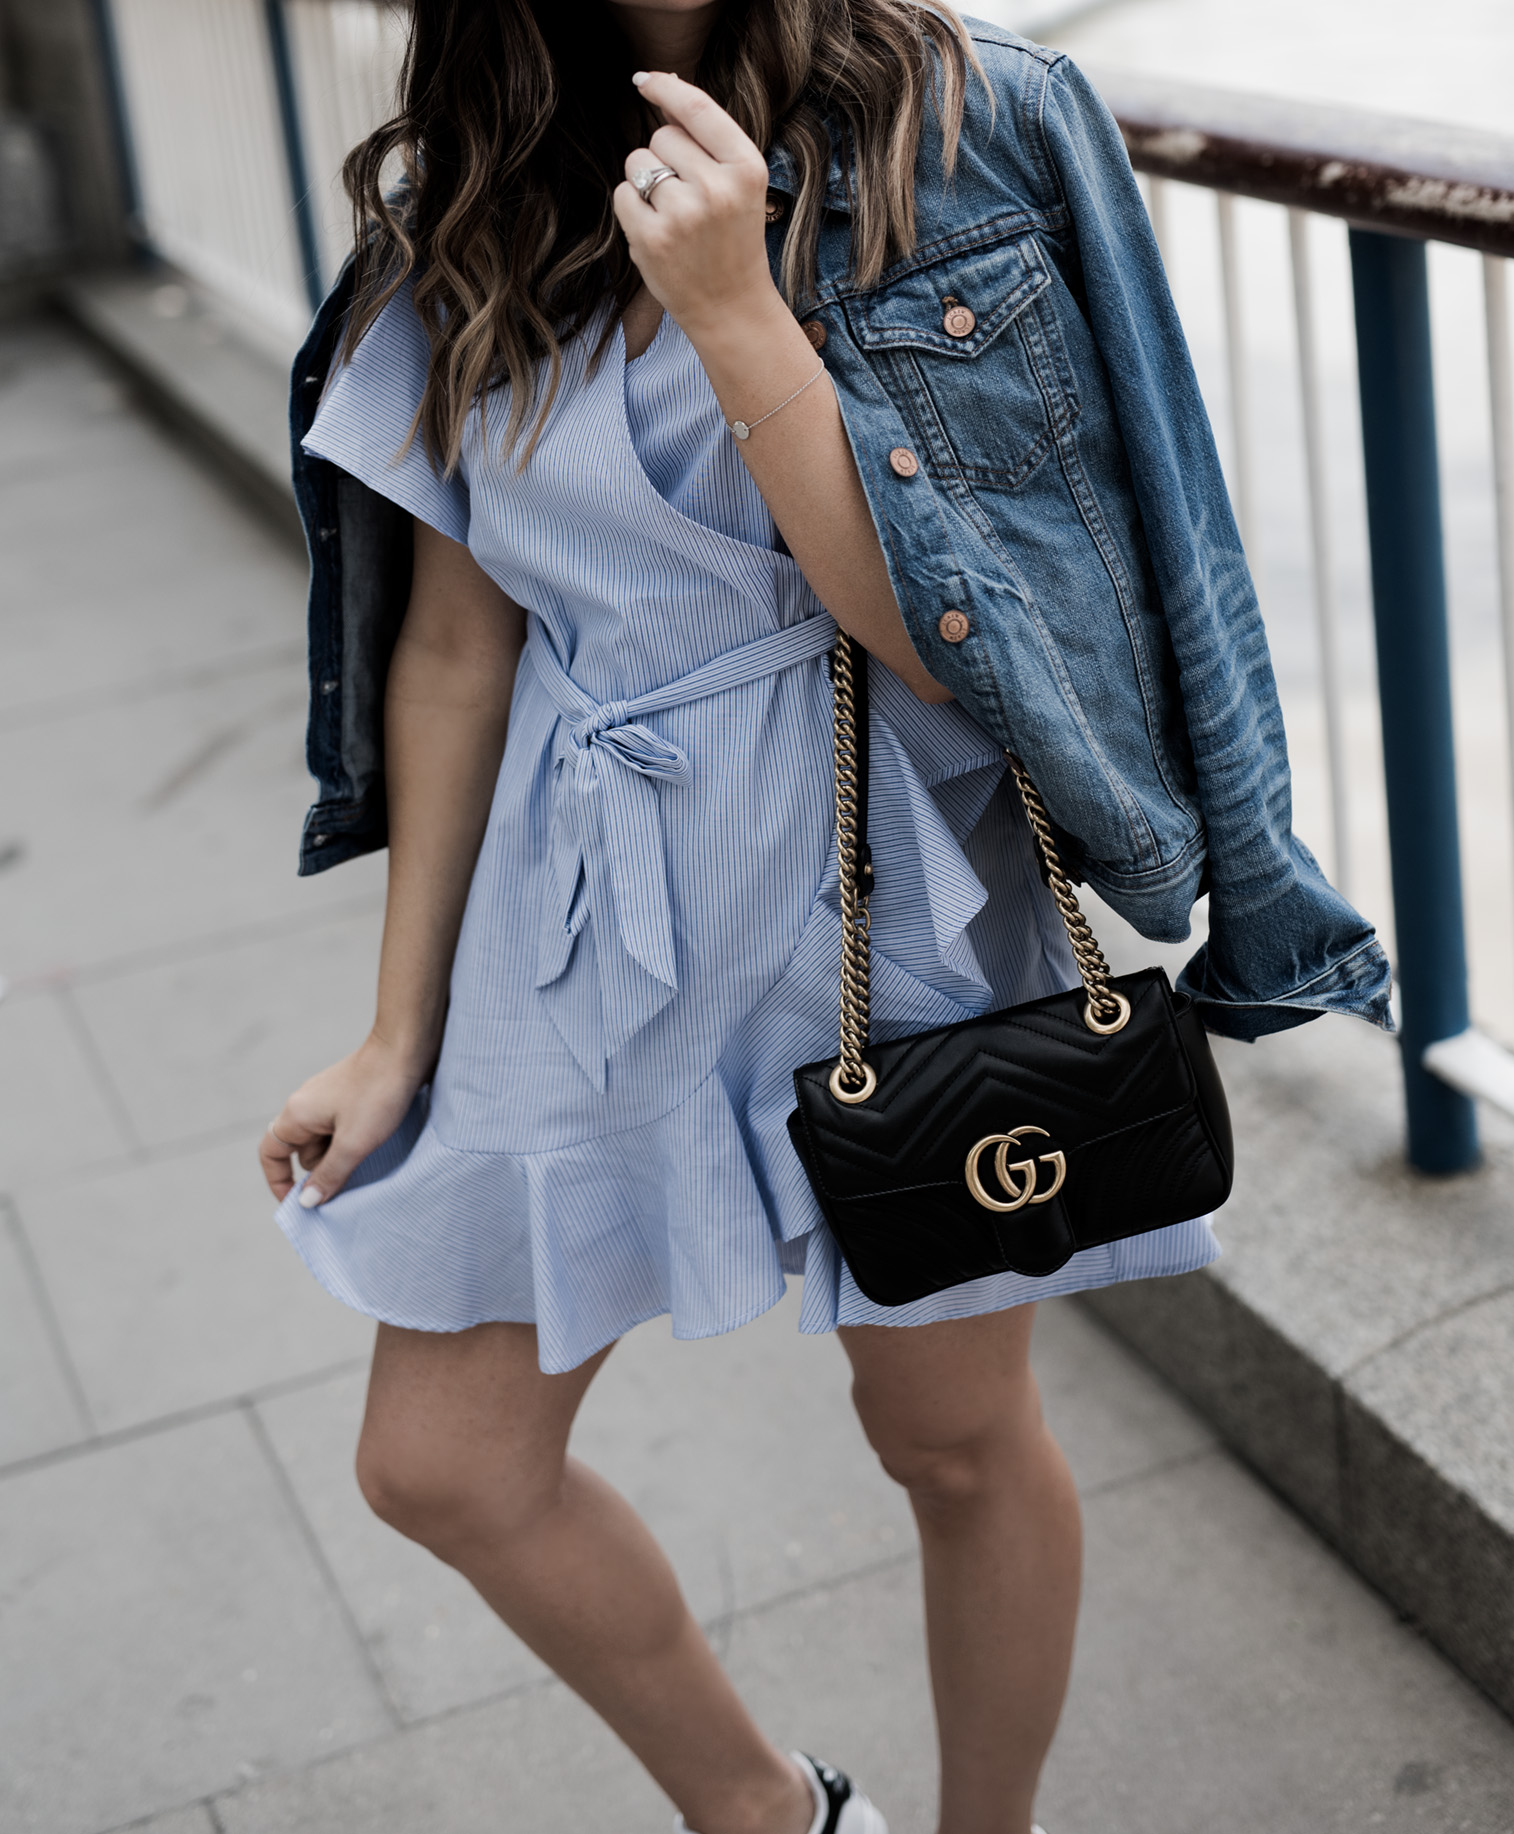 Tiffany Jais Houston fashion and lifestyle blogger | The London eye-what I wore, Gucci marmot bag, wrap dress, dresses with sneakers outfits, casual outfits, what to wear in London, Things to do in London